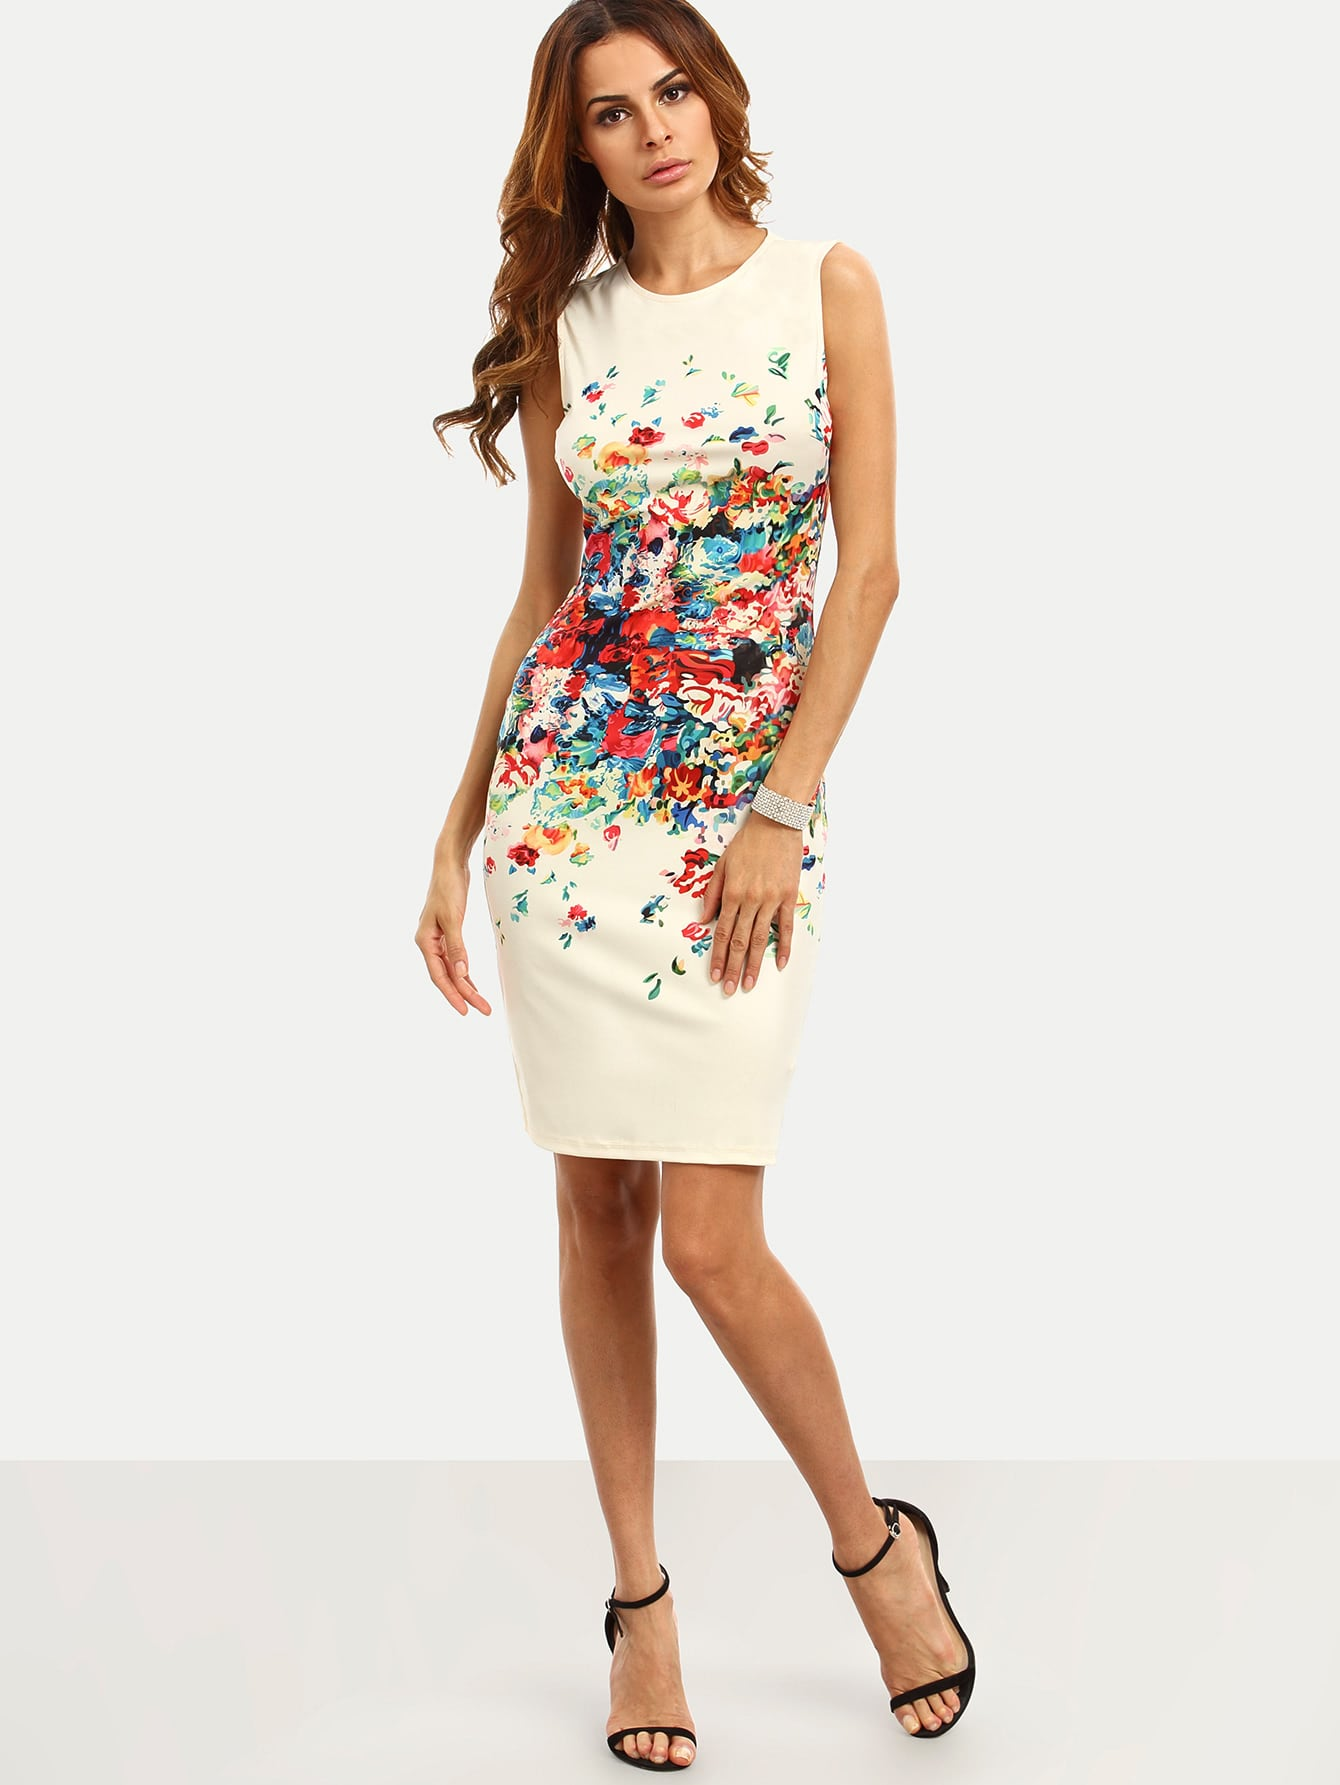 Have a look at this brief and professional dress. This sleek, sleeveless dress offers a concise look at its color block design. It has a round neckline, stretch fabric and seamless detail. The dress has a knee-length hemline and bodycon silhouette. Perfect for casual, work or formal occasion Brand: Rosegal.